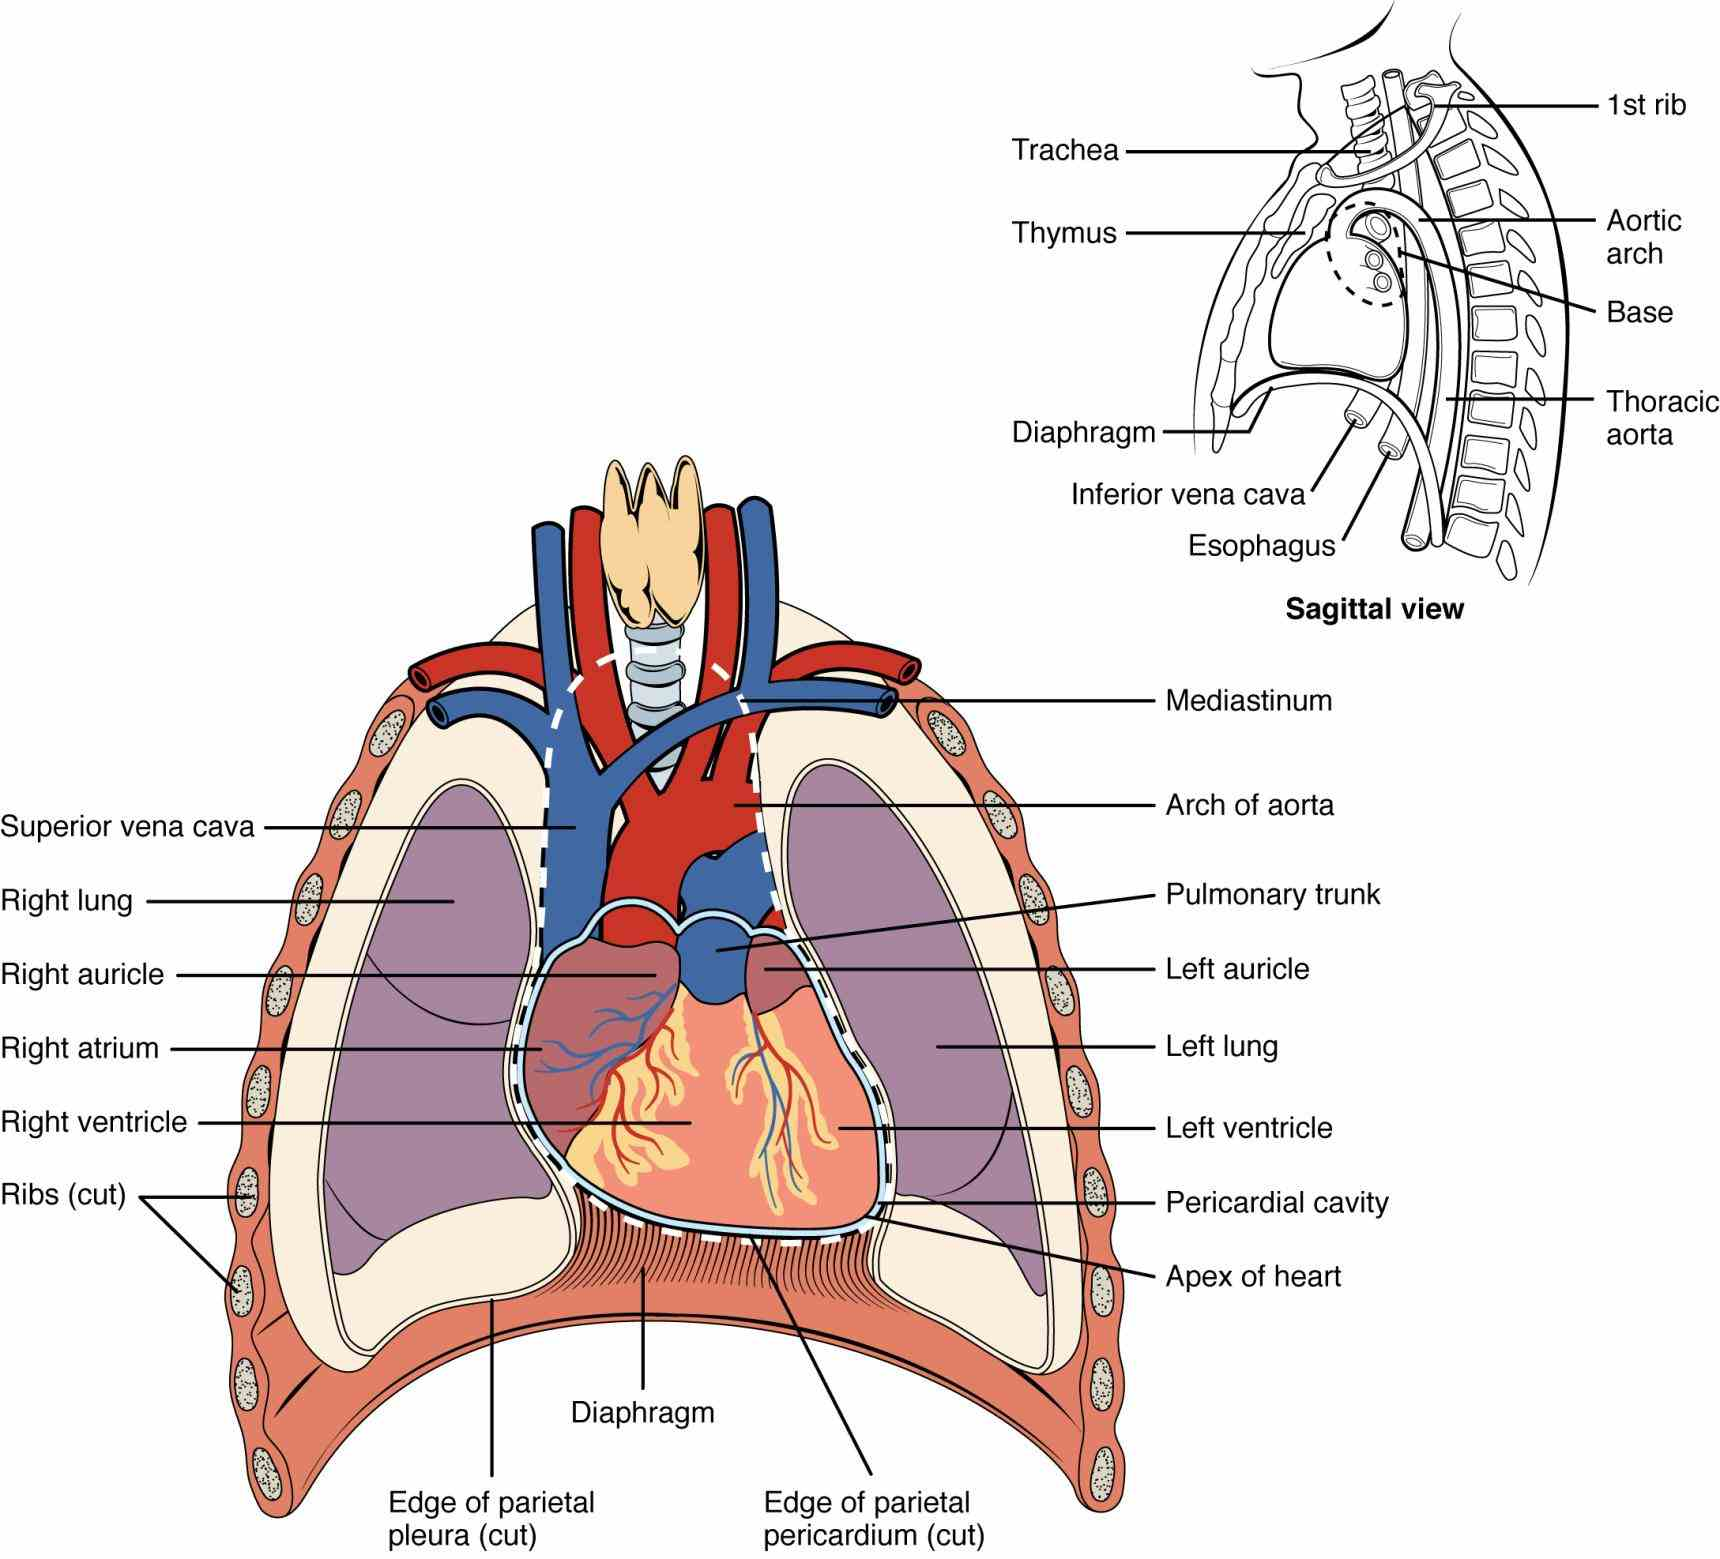 cells t true Double Layered Membrane On The Outside Of The Heart or false the double layered membrane that